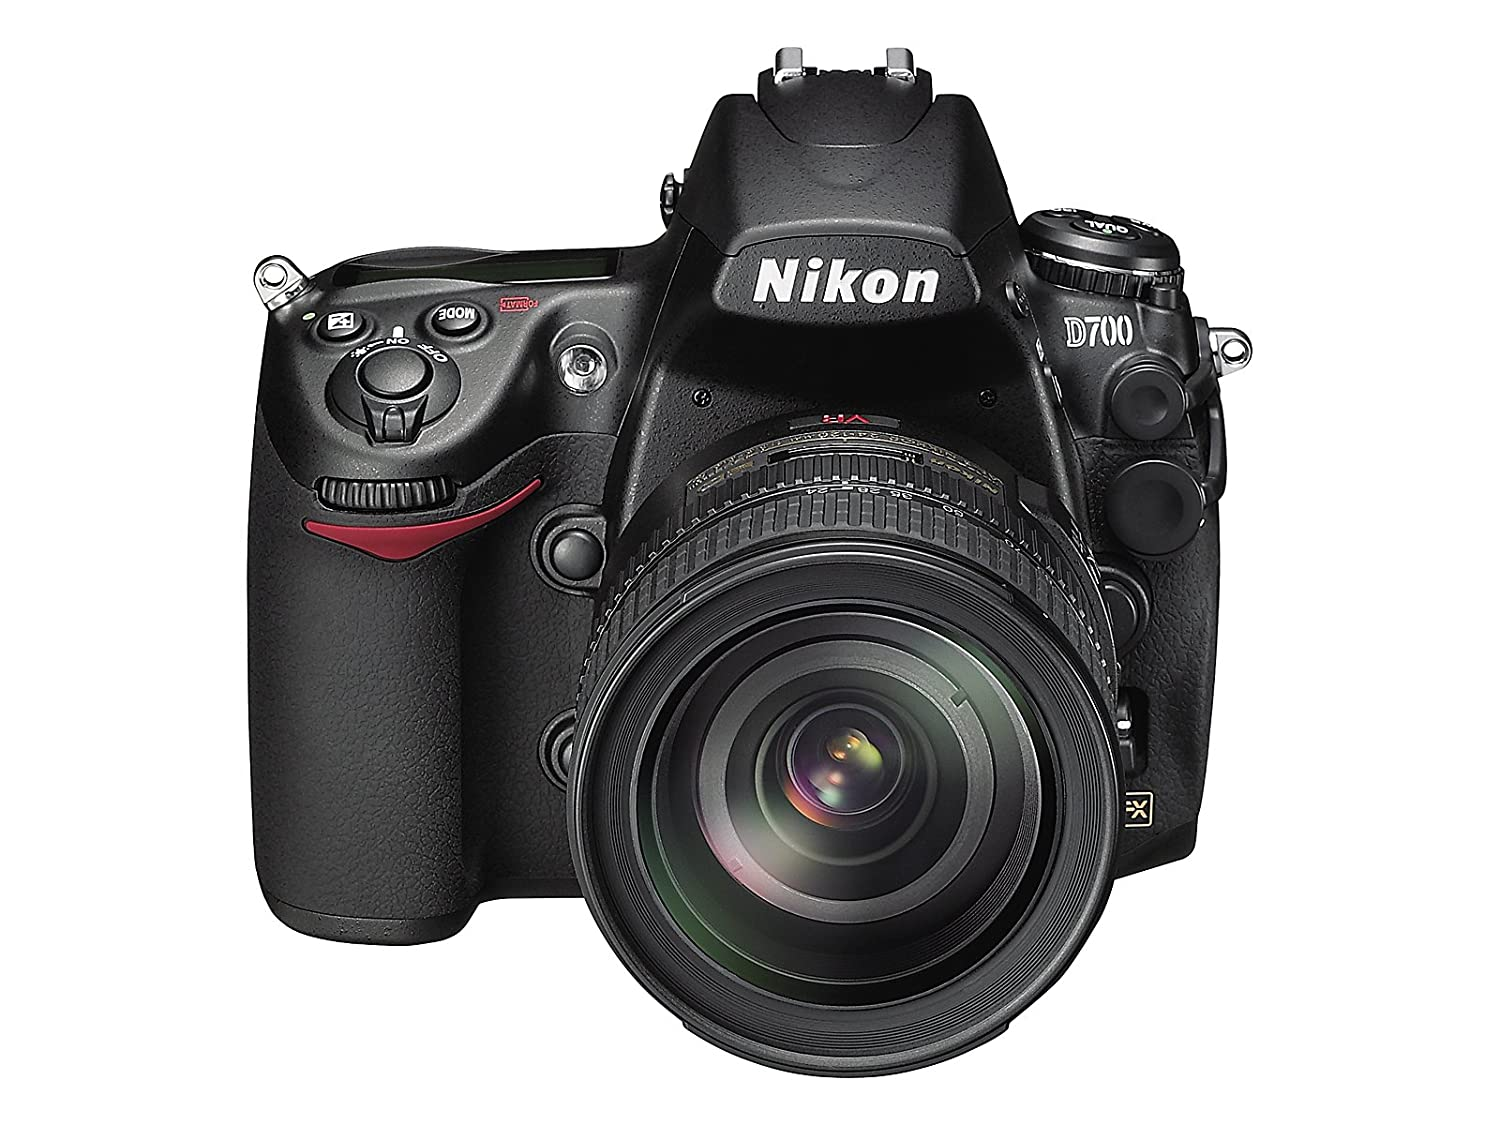 Nikon D700 121mp Fx Format Cmos Digital Slr Camera Lens Parts Diagram Where To Get For A D5000 With 30 Inch Lcd Body Only Old Model Photo